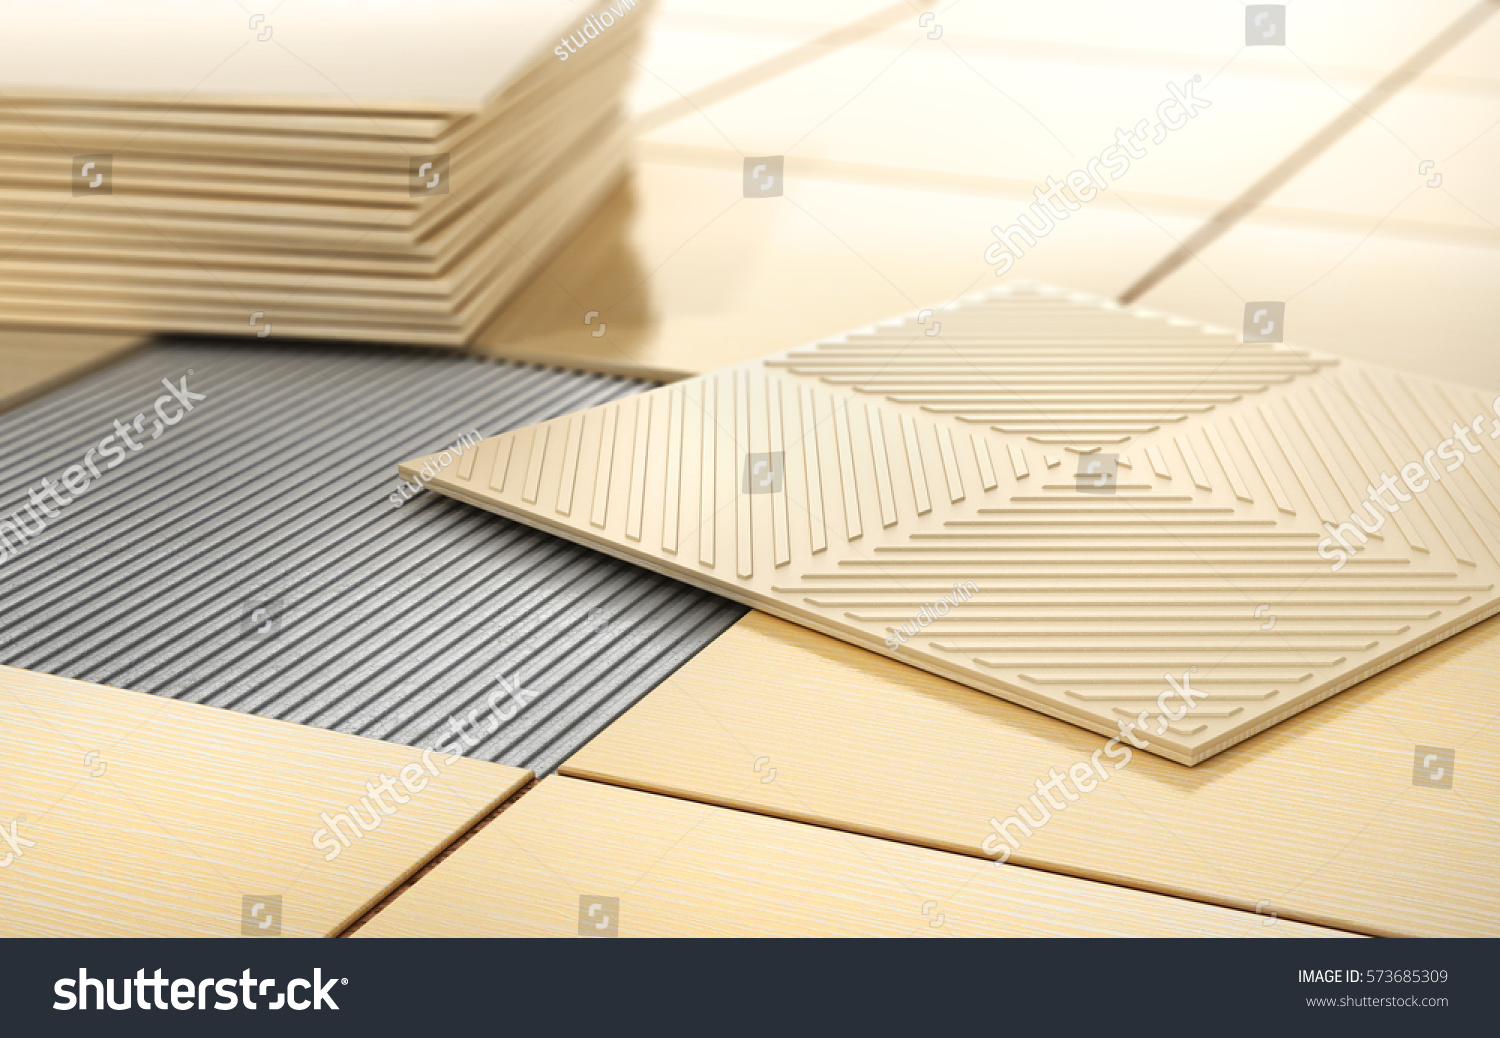 Process floor coating ceramic tile on stock illustration 573685309 process of floor coating ceramic tile on a tiled floor 3d illustration dailygadgetfo Images